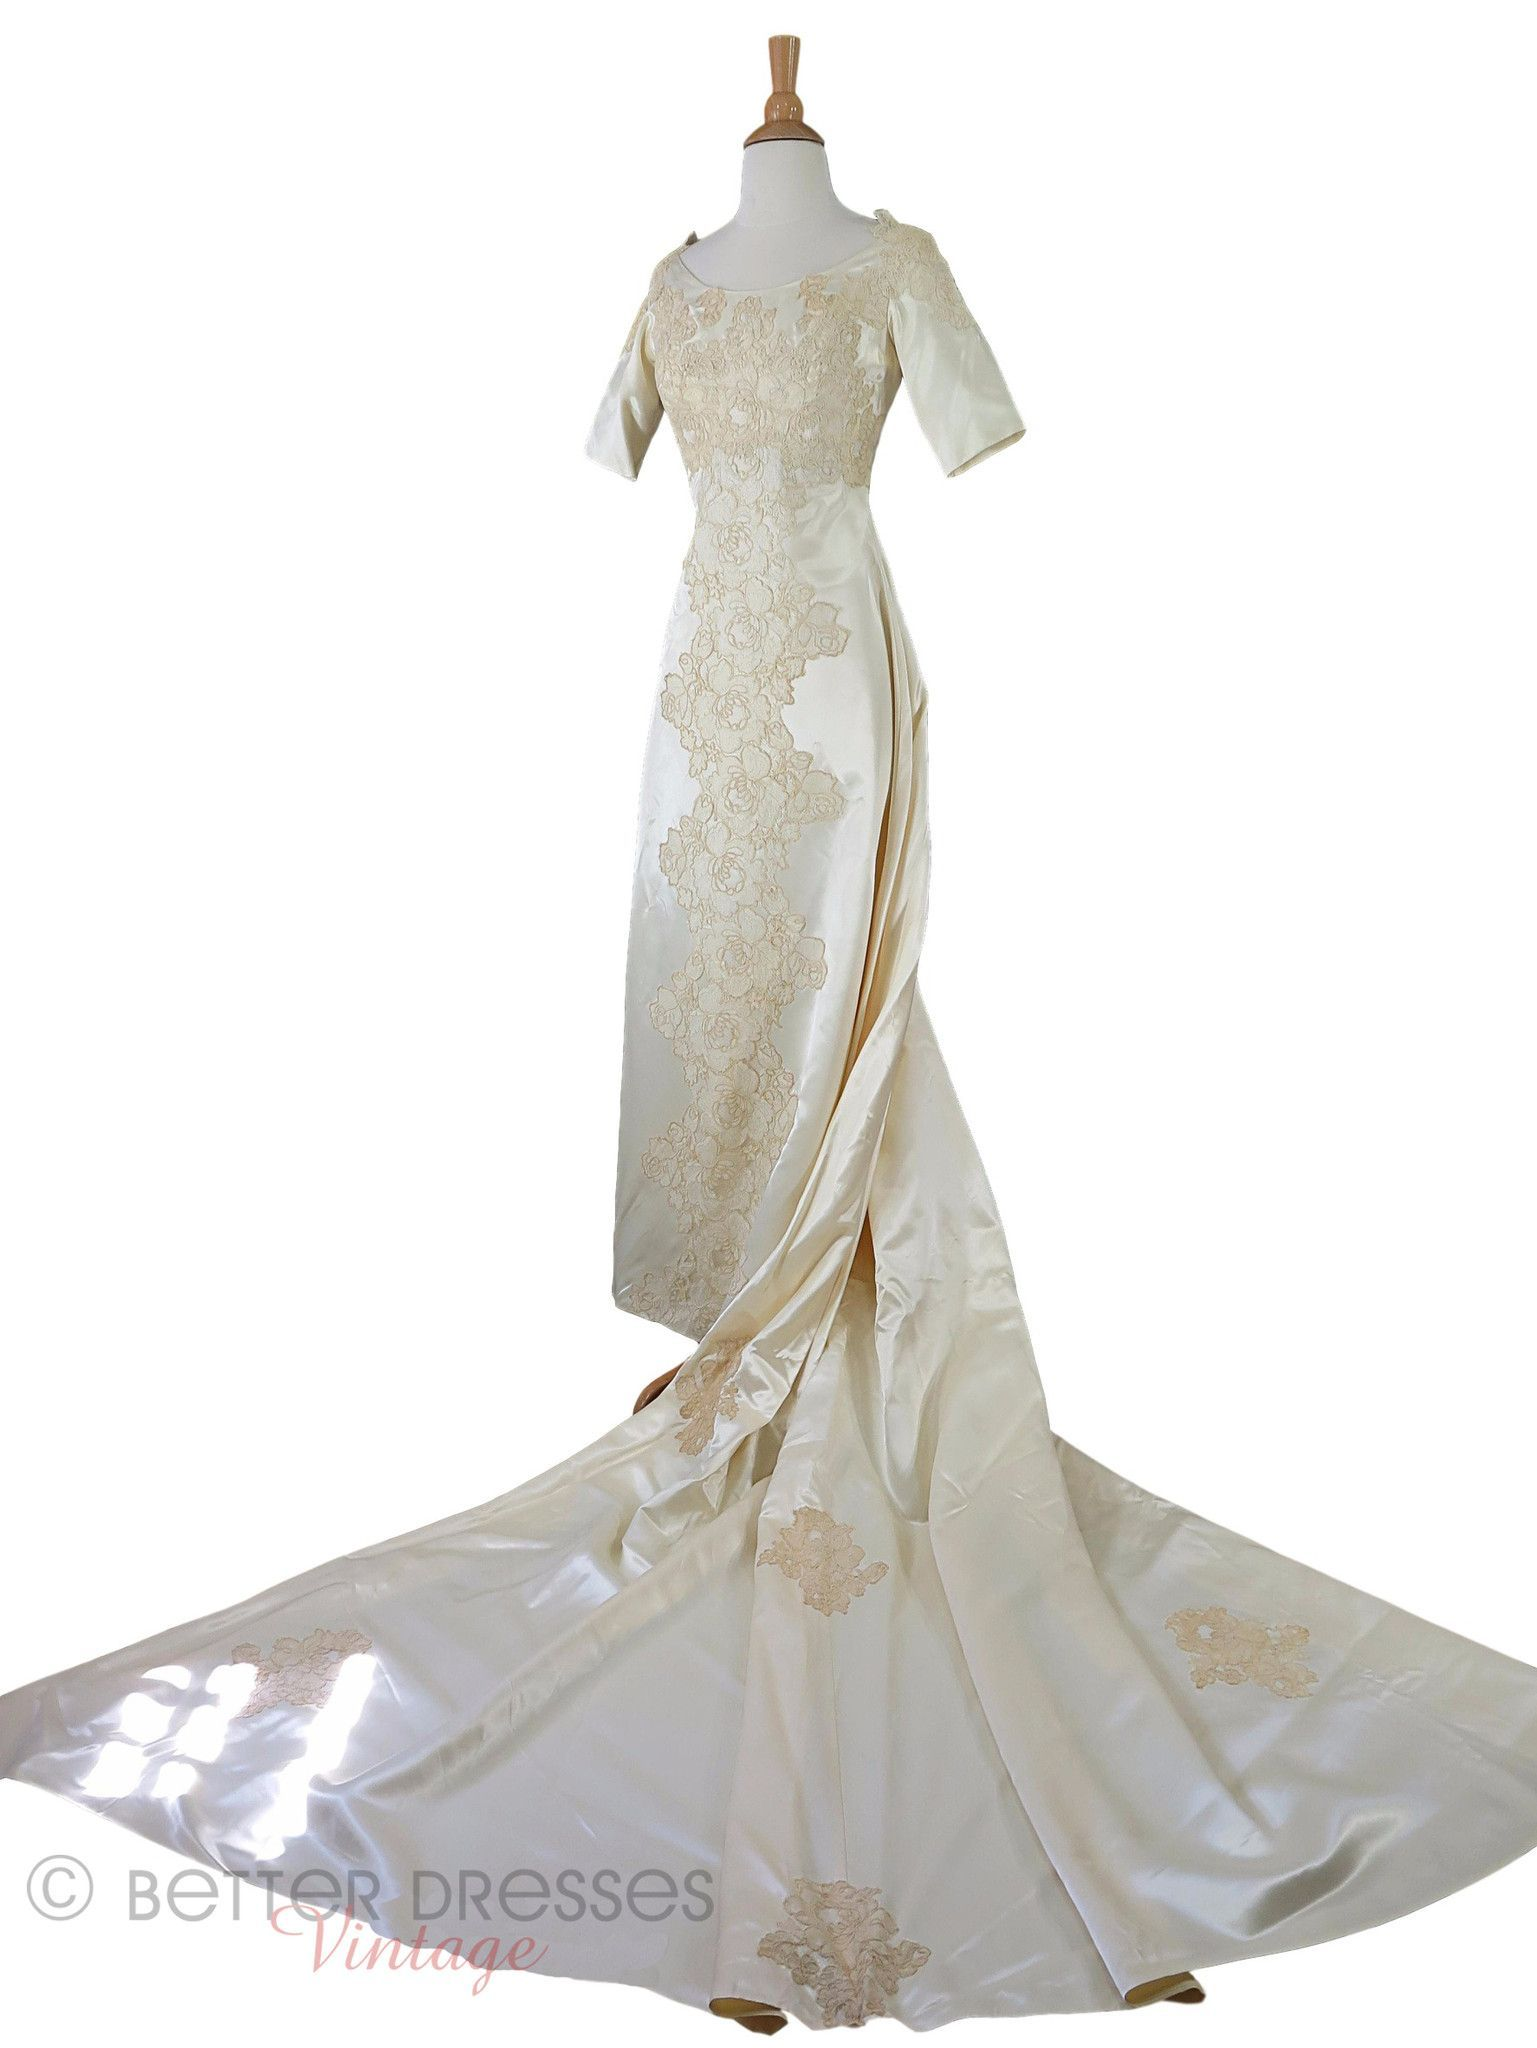 60s wedding dress  s Satin and Lace Wedding Gown  xs sm  Wedding gowns Products